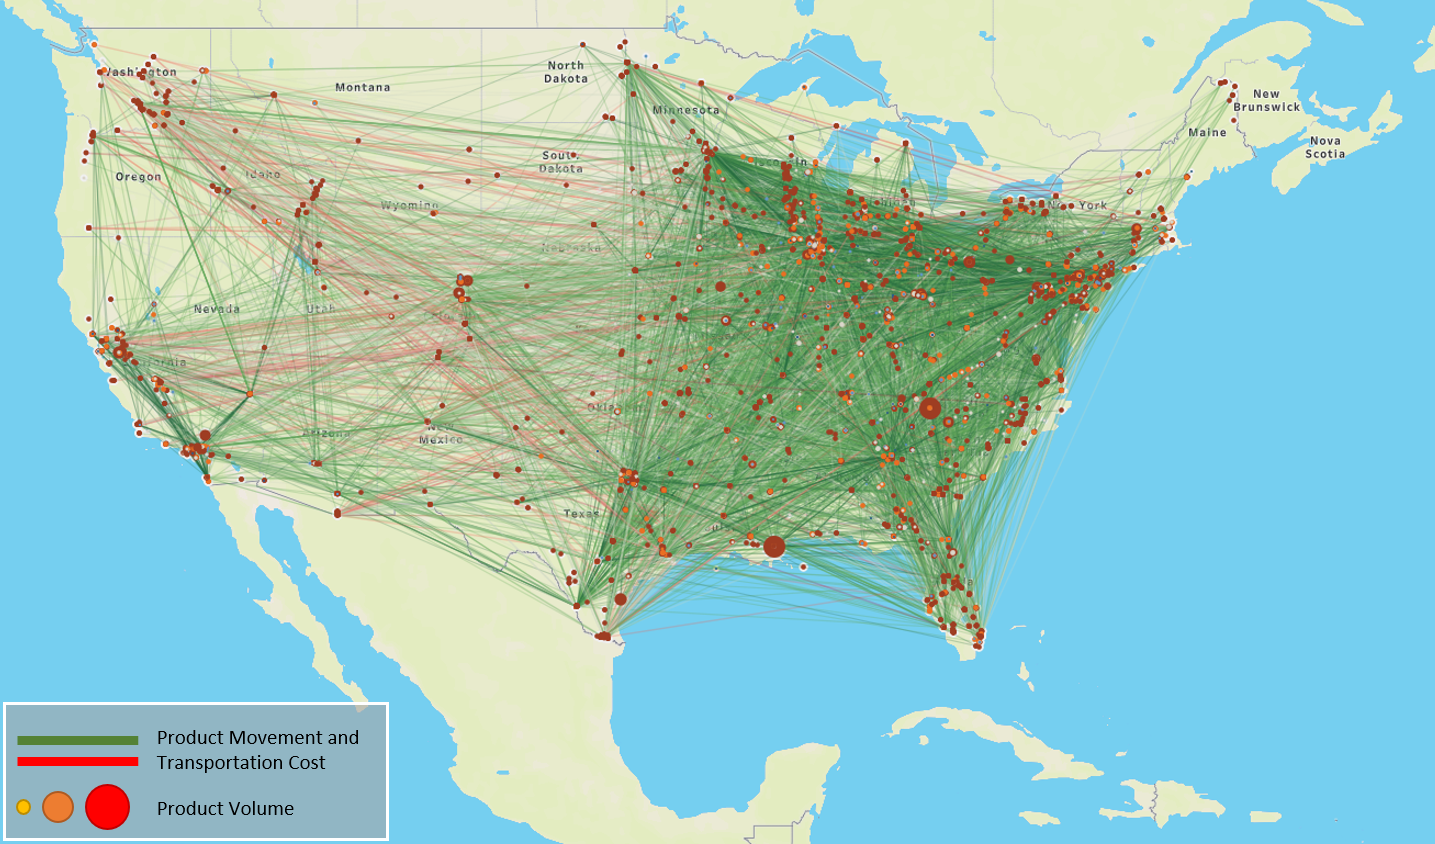 Map of shipping lanes across the country run by Feeding America by volume